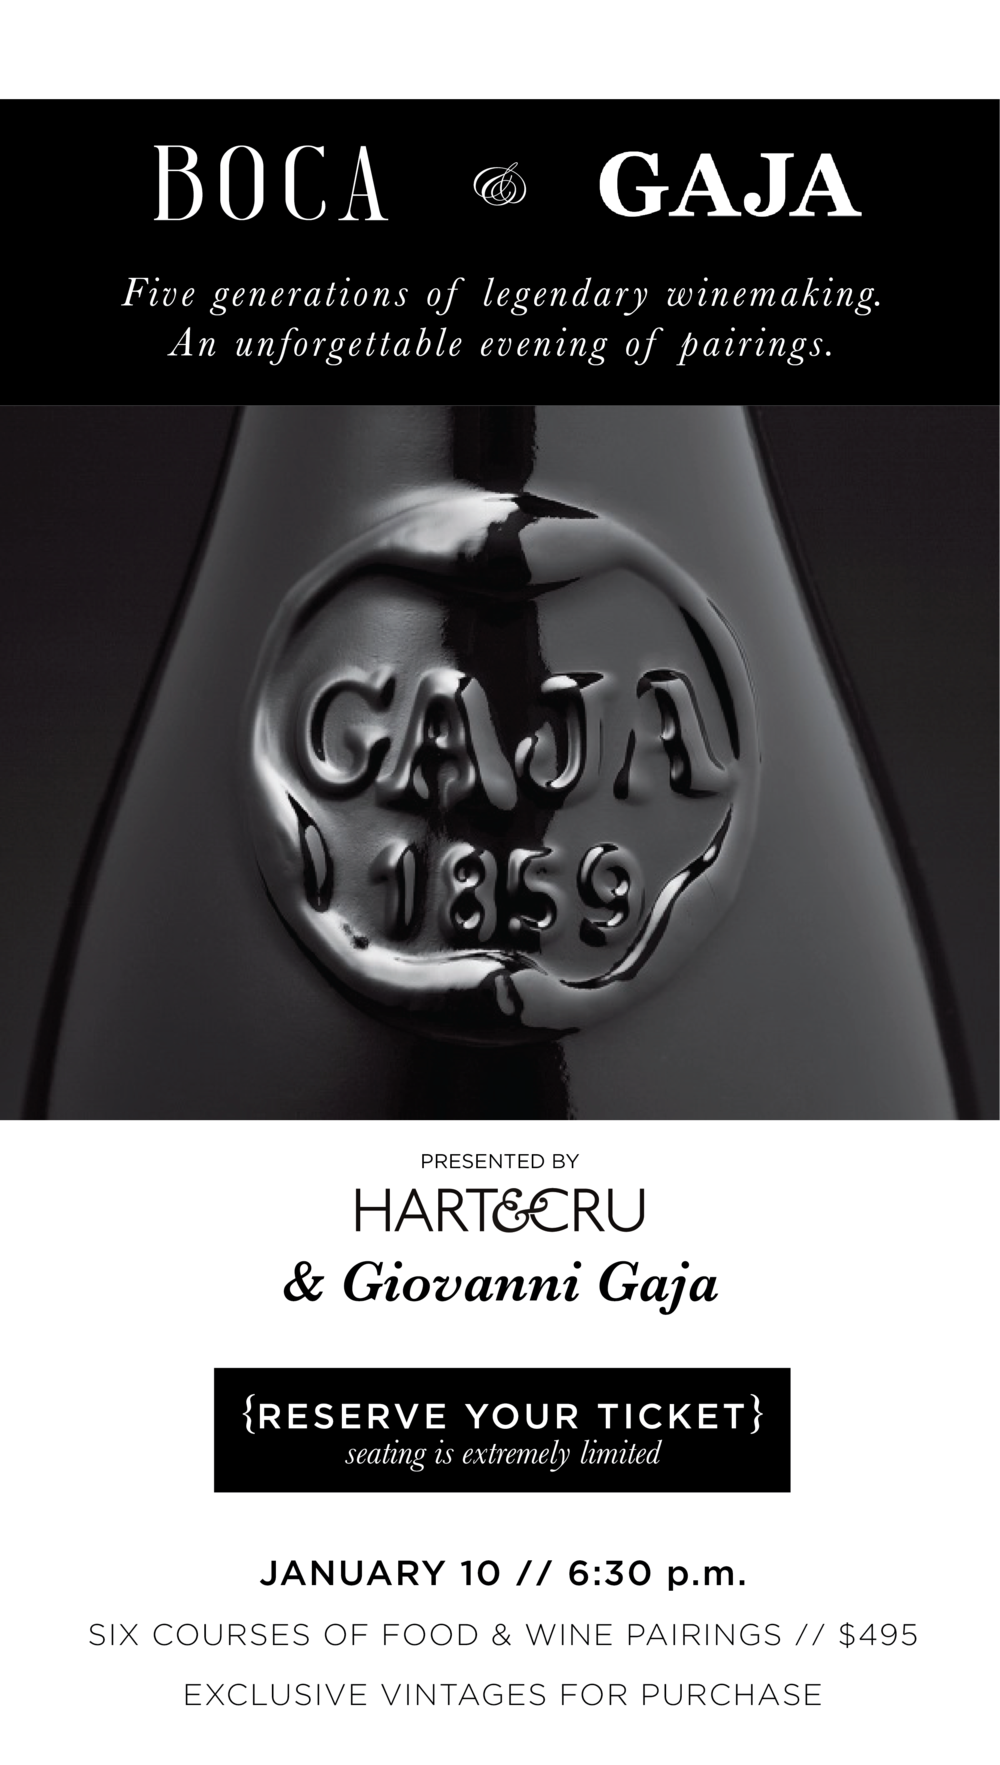 This January 10th, in collaboration with our dear friends from Boca Restaurant, we proudly present an evening of unforgettable food and the highly esteemed wines of the Gaja family.   Founded in 1859 in Barbaresco, the legendary winery represents five generations of winemaking knowledge passed   downward   throughout the years. From modest roots set down by founder Giovanni Gaja, to the near monolithic reputation they carry today, Gaja has always made a point to put quality,   craftsmanship   and innovation at the forefront of everything they do.  Join Giovanni Gaja, fifth-generation winemaker, for an evening showcasing the family's top vineyard sites and single vineyard wines, from Gaia & Rey Chardonnay to their iconic Barbaresco. Add to your cellar collection with exclusive vintages available for purchase.